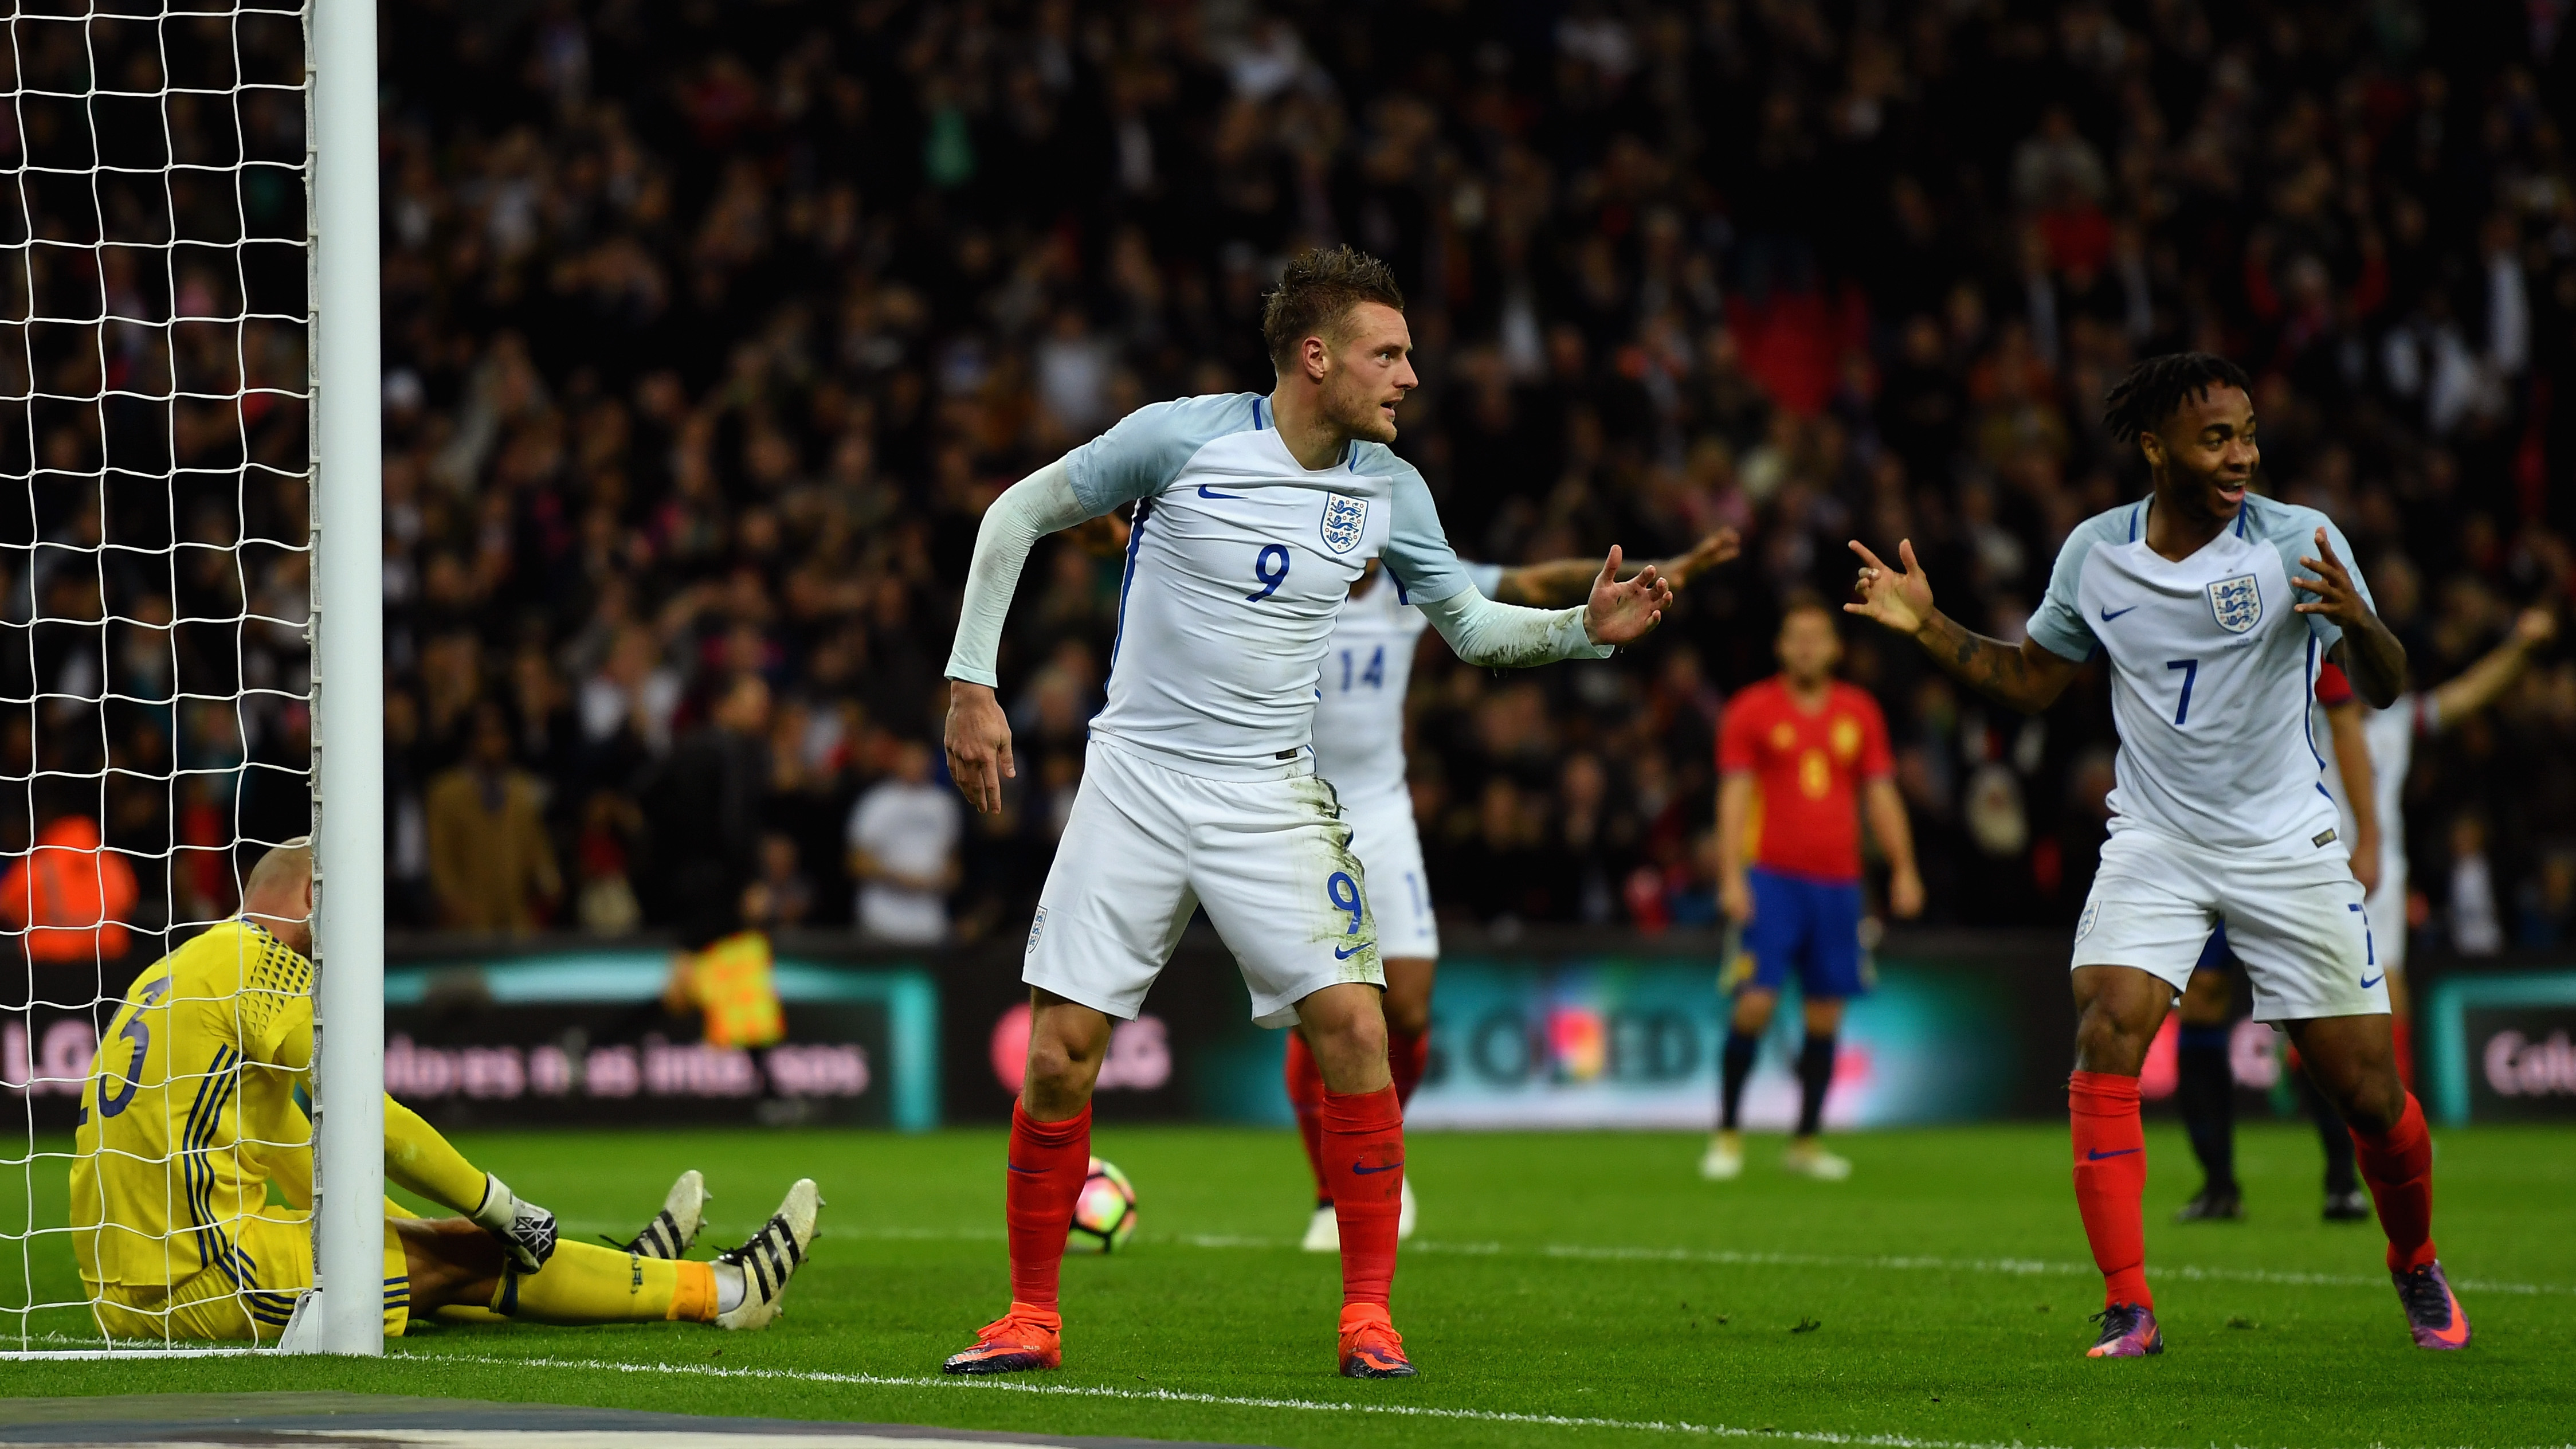 Jamie Vardy of England (9) celebrates as he scores their second goal during the international friendly match between England and Spain at Wembley Stadium on Nov. 15, 2016 in London, England.